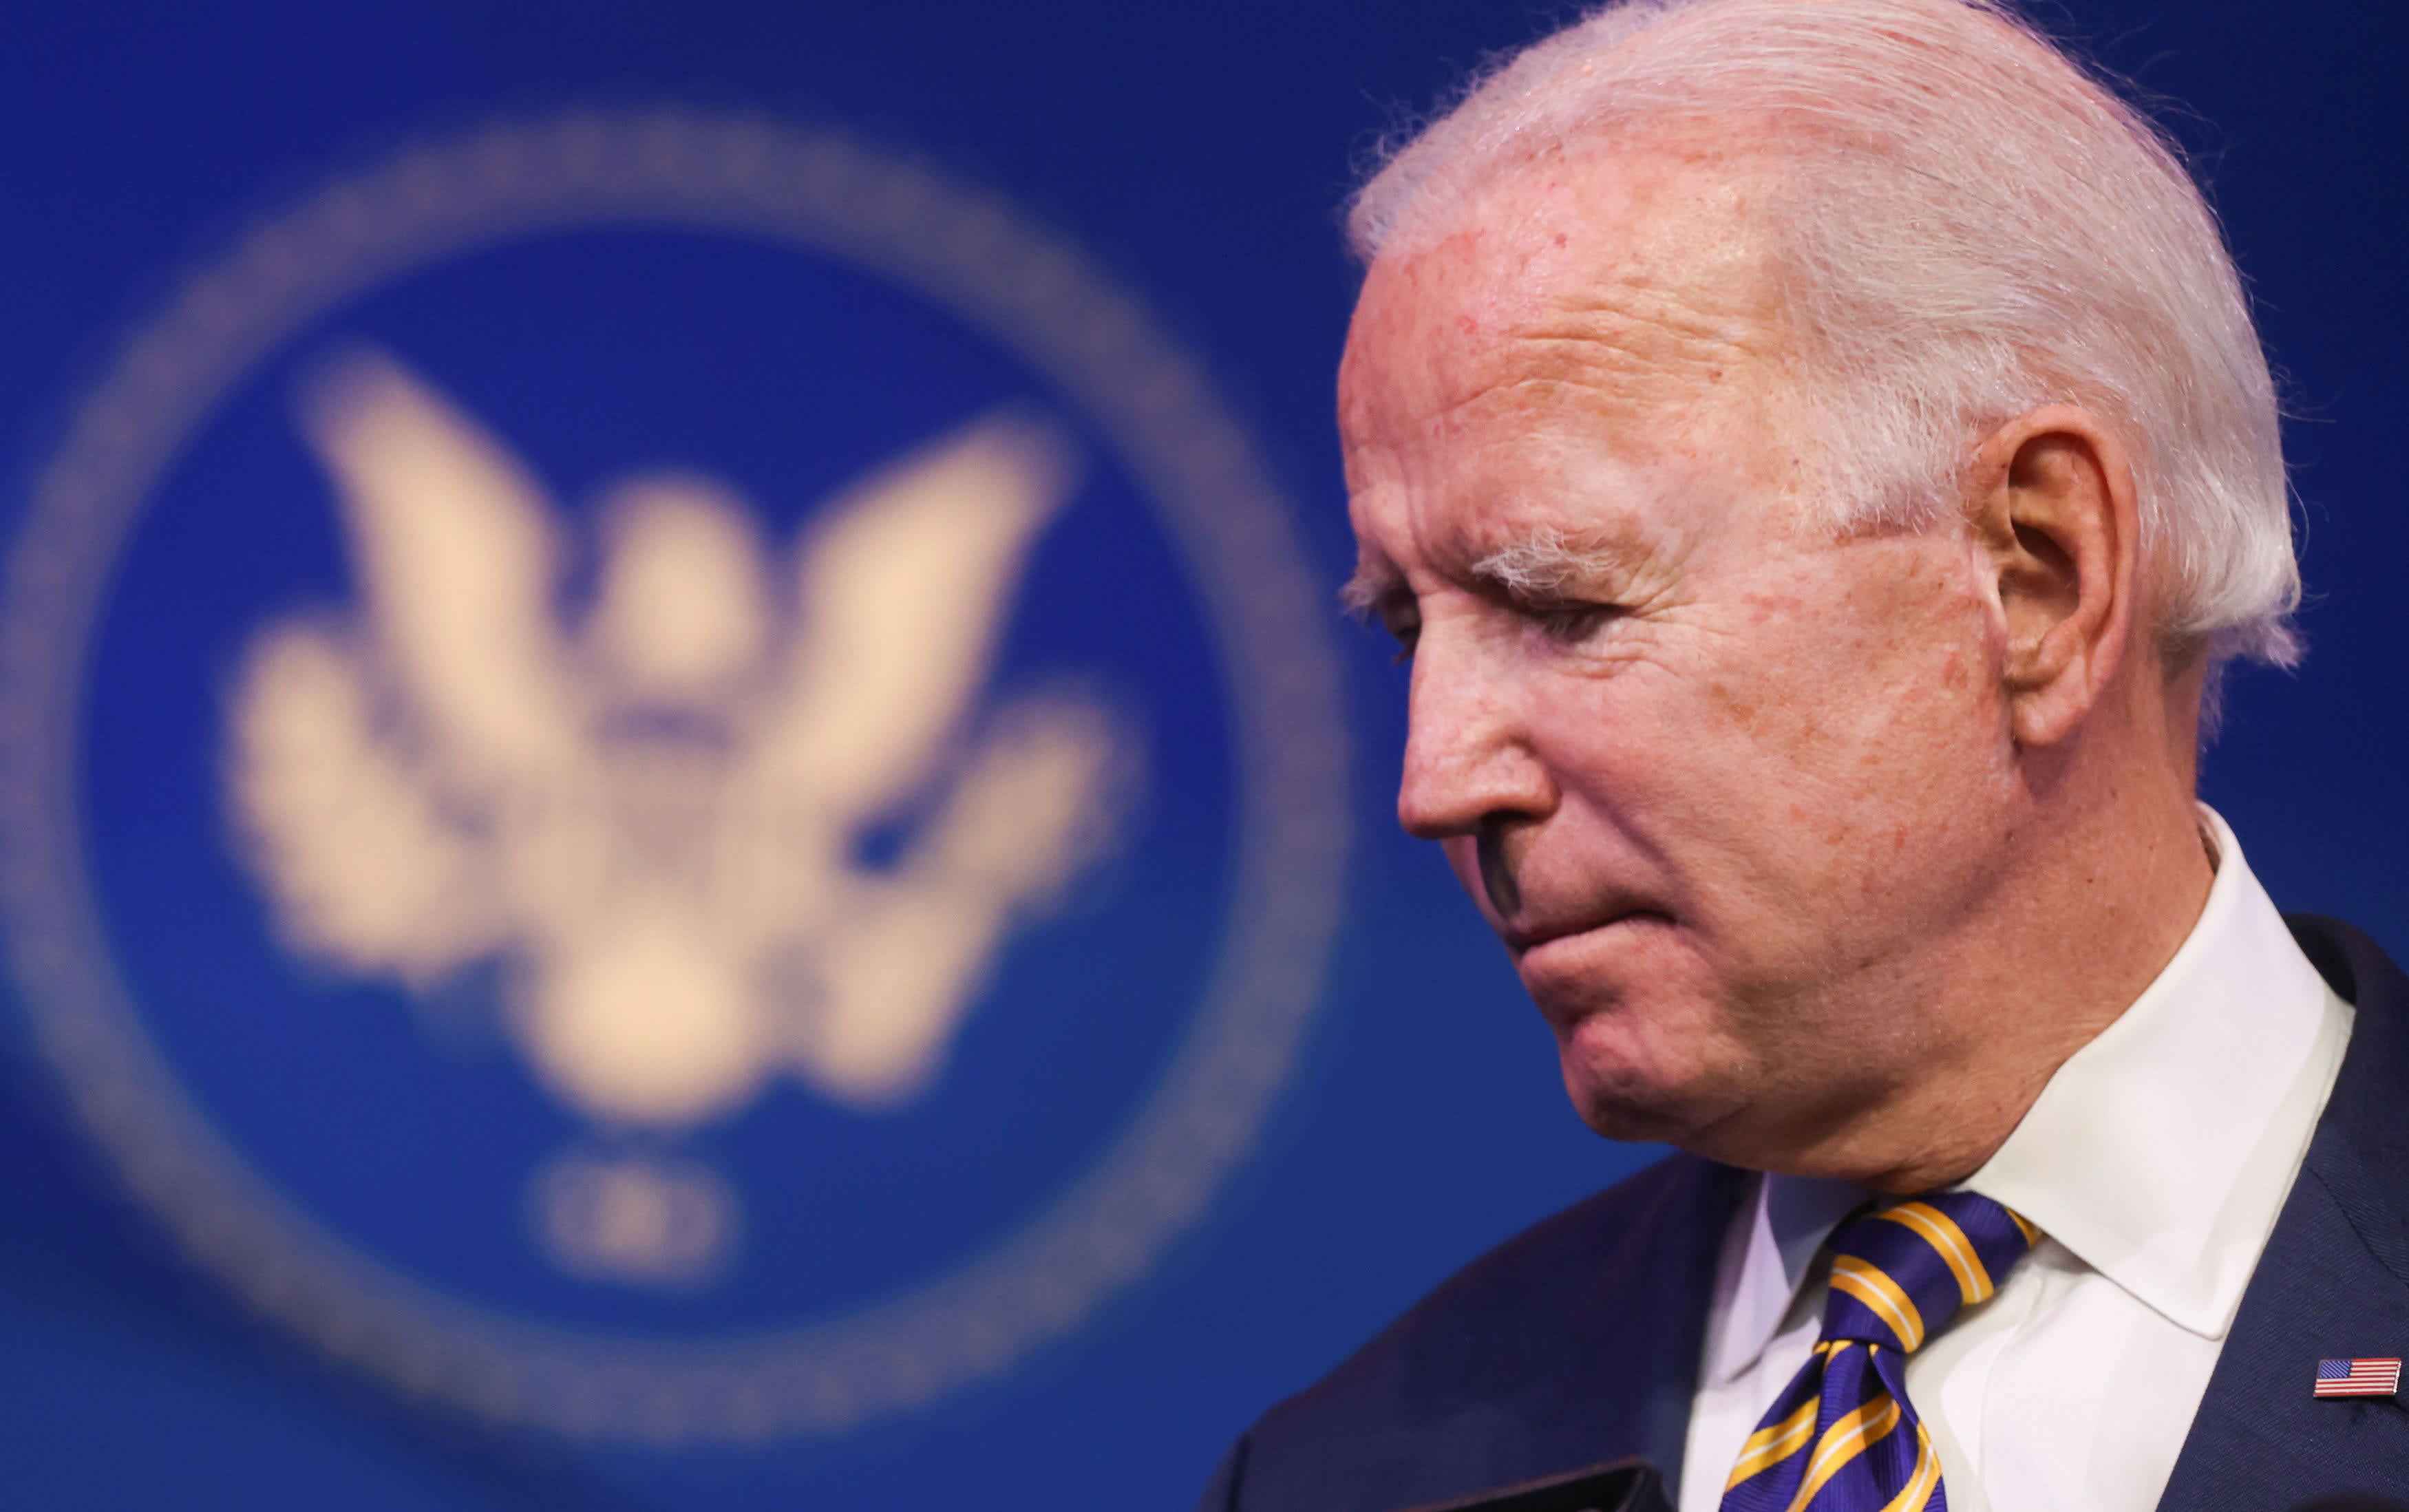 Biden says Iran must return to negotiating table before U.S. lifts sanctions – CNBC